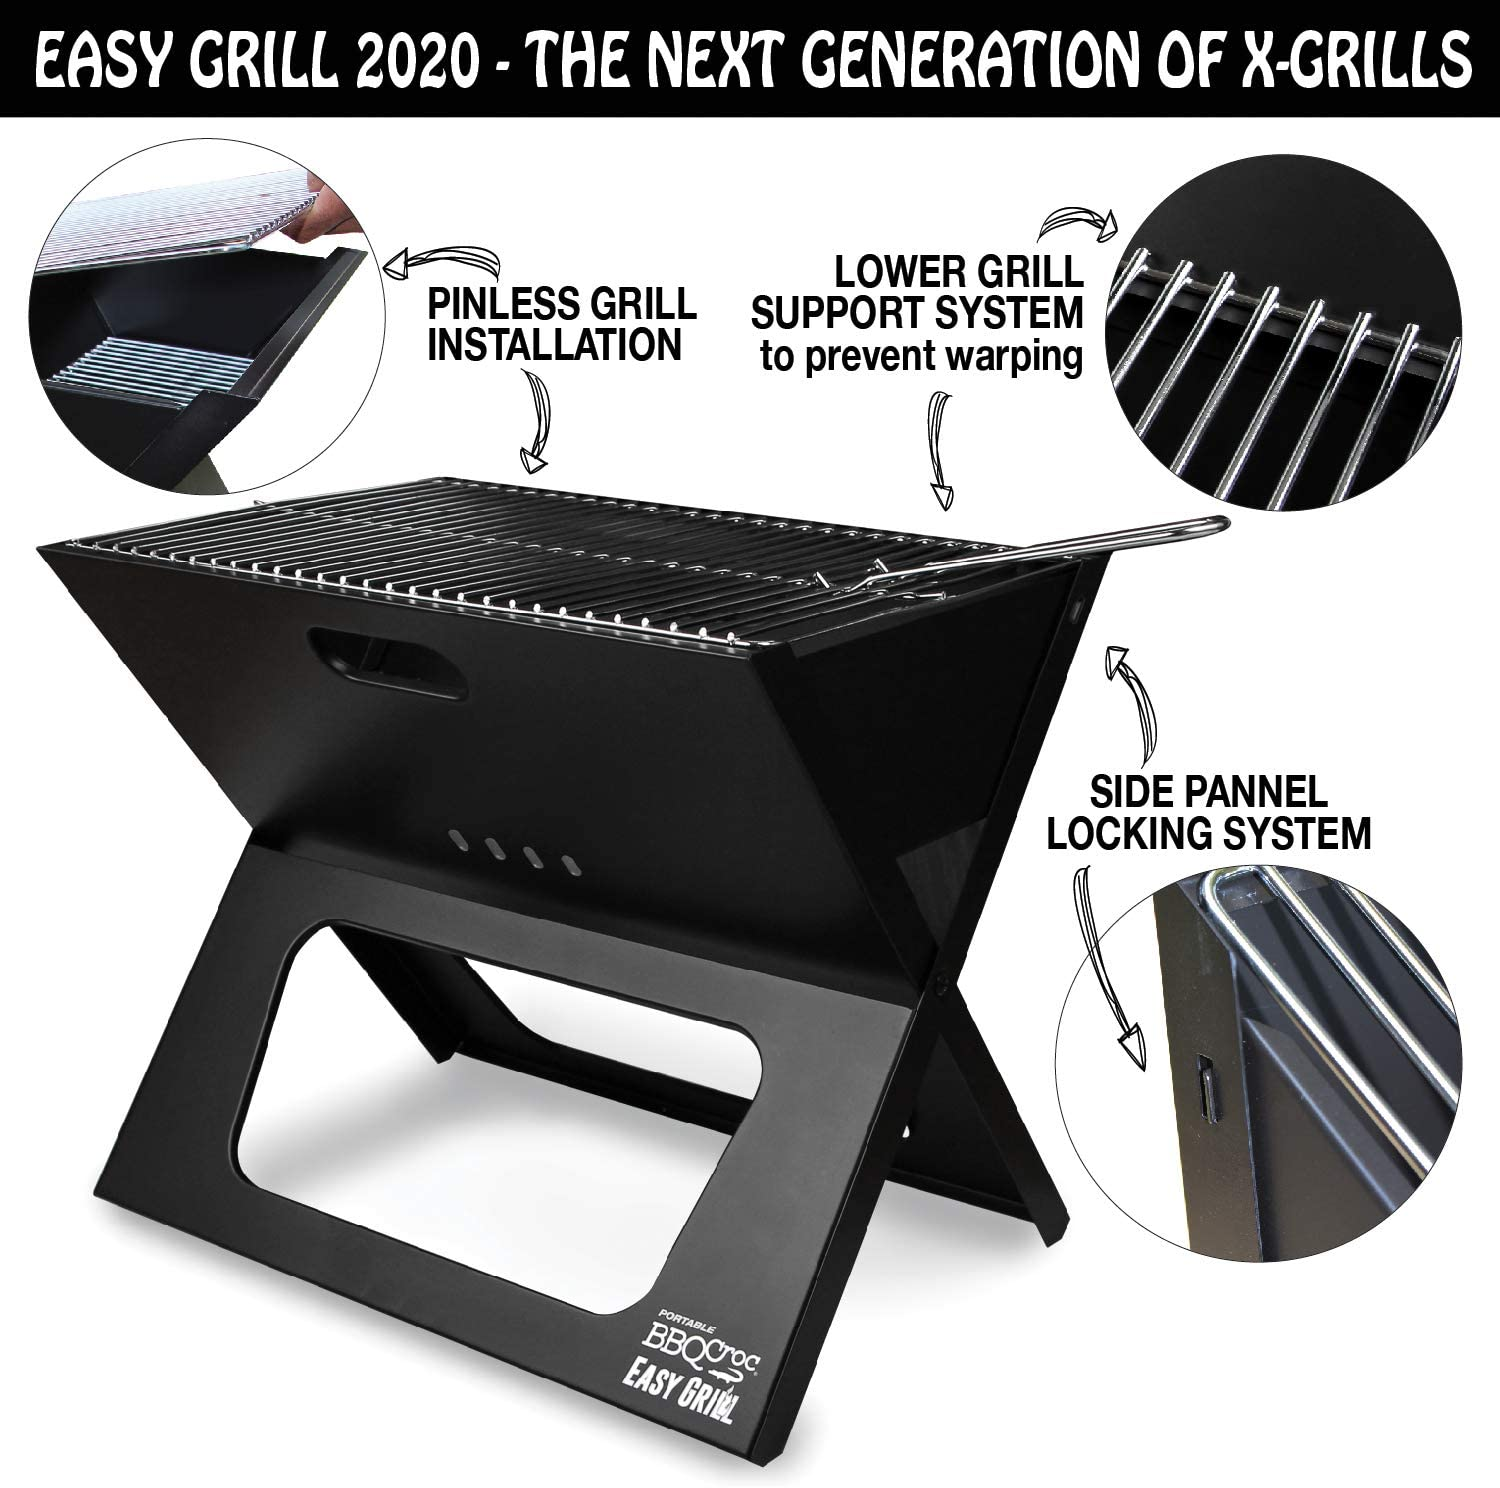 BBQ Croc Portable Easy Grill Premium Foldable Charcoal Barbecue Very Large Grilling Surface